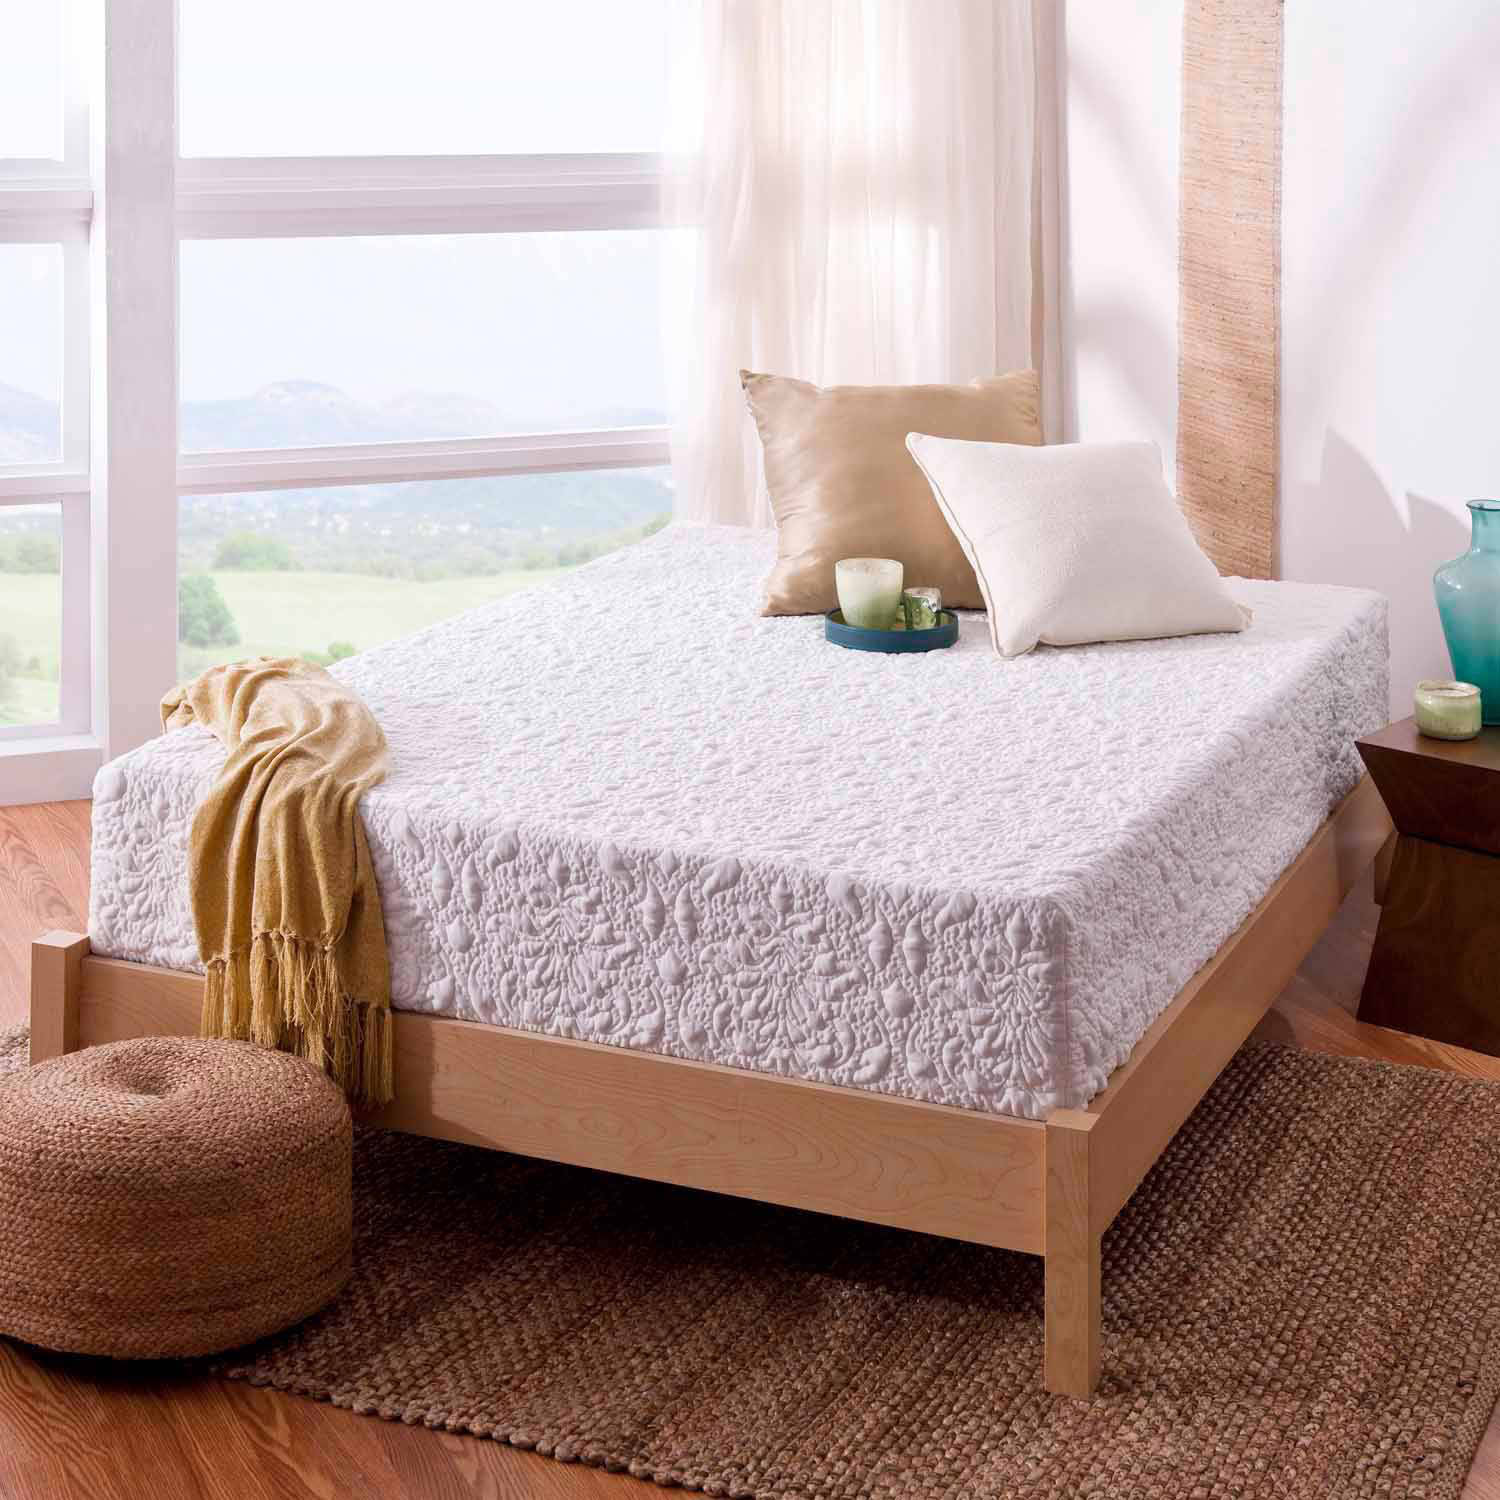 Image Result For Spa Sensations Theratouch Memory Foam Mattress Full